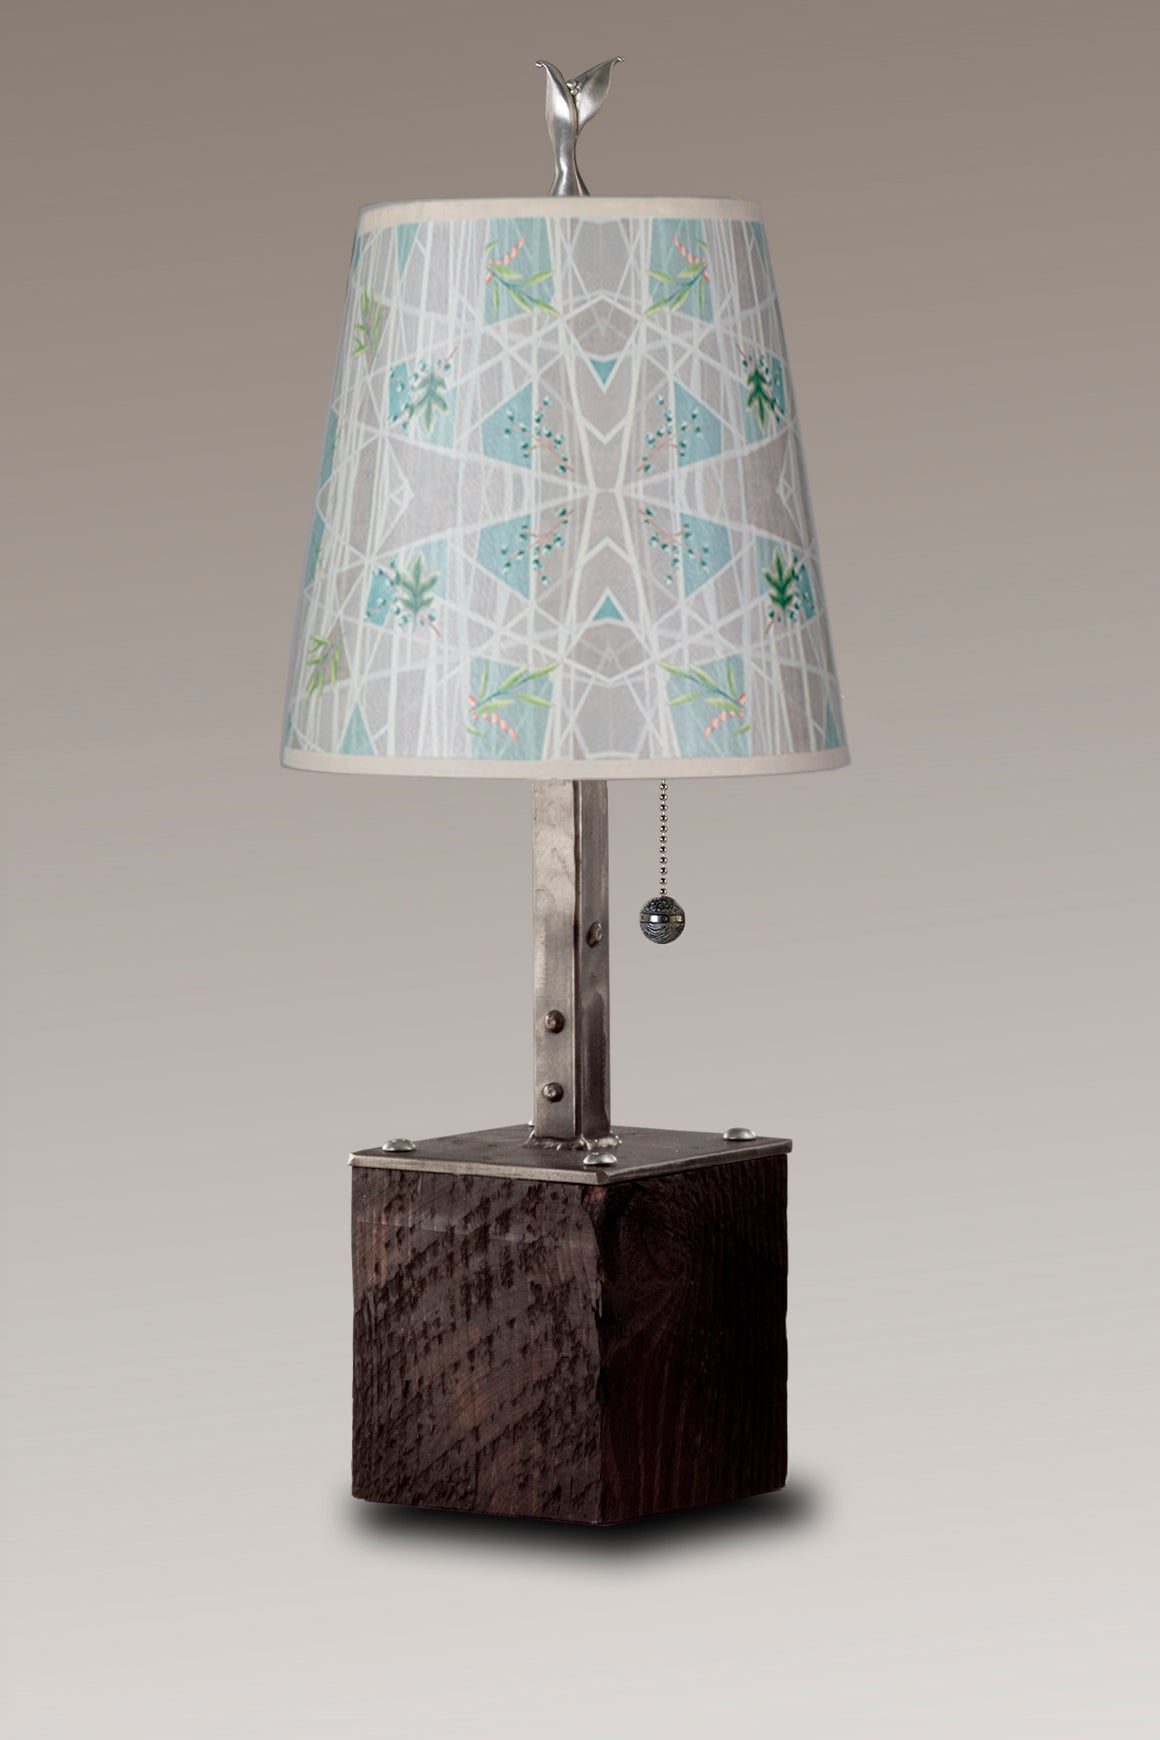 Steel Table Lamp on Reclaimed Wood with Small Drum Shade in Prism